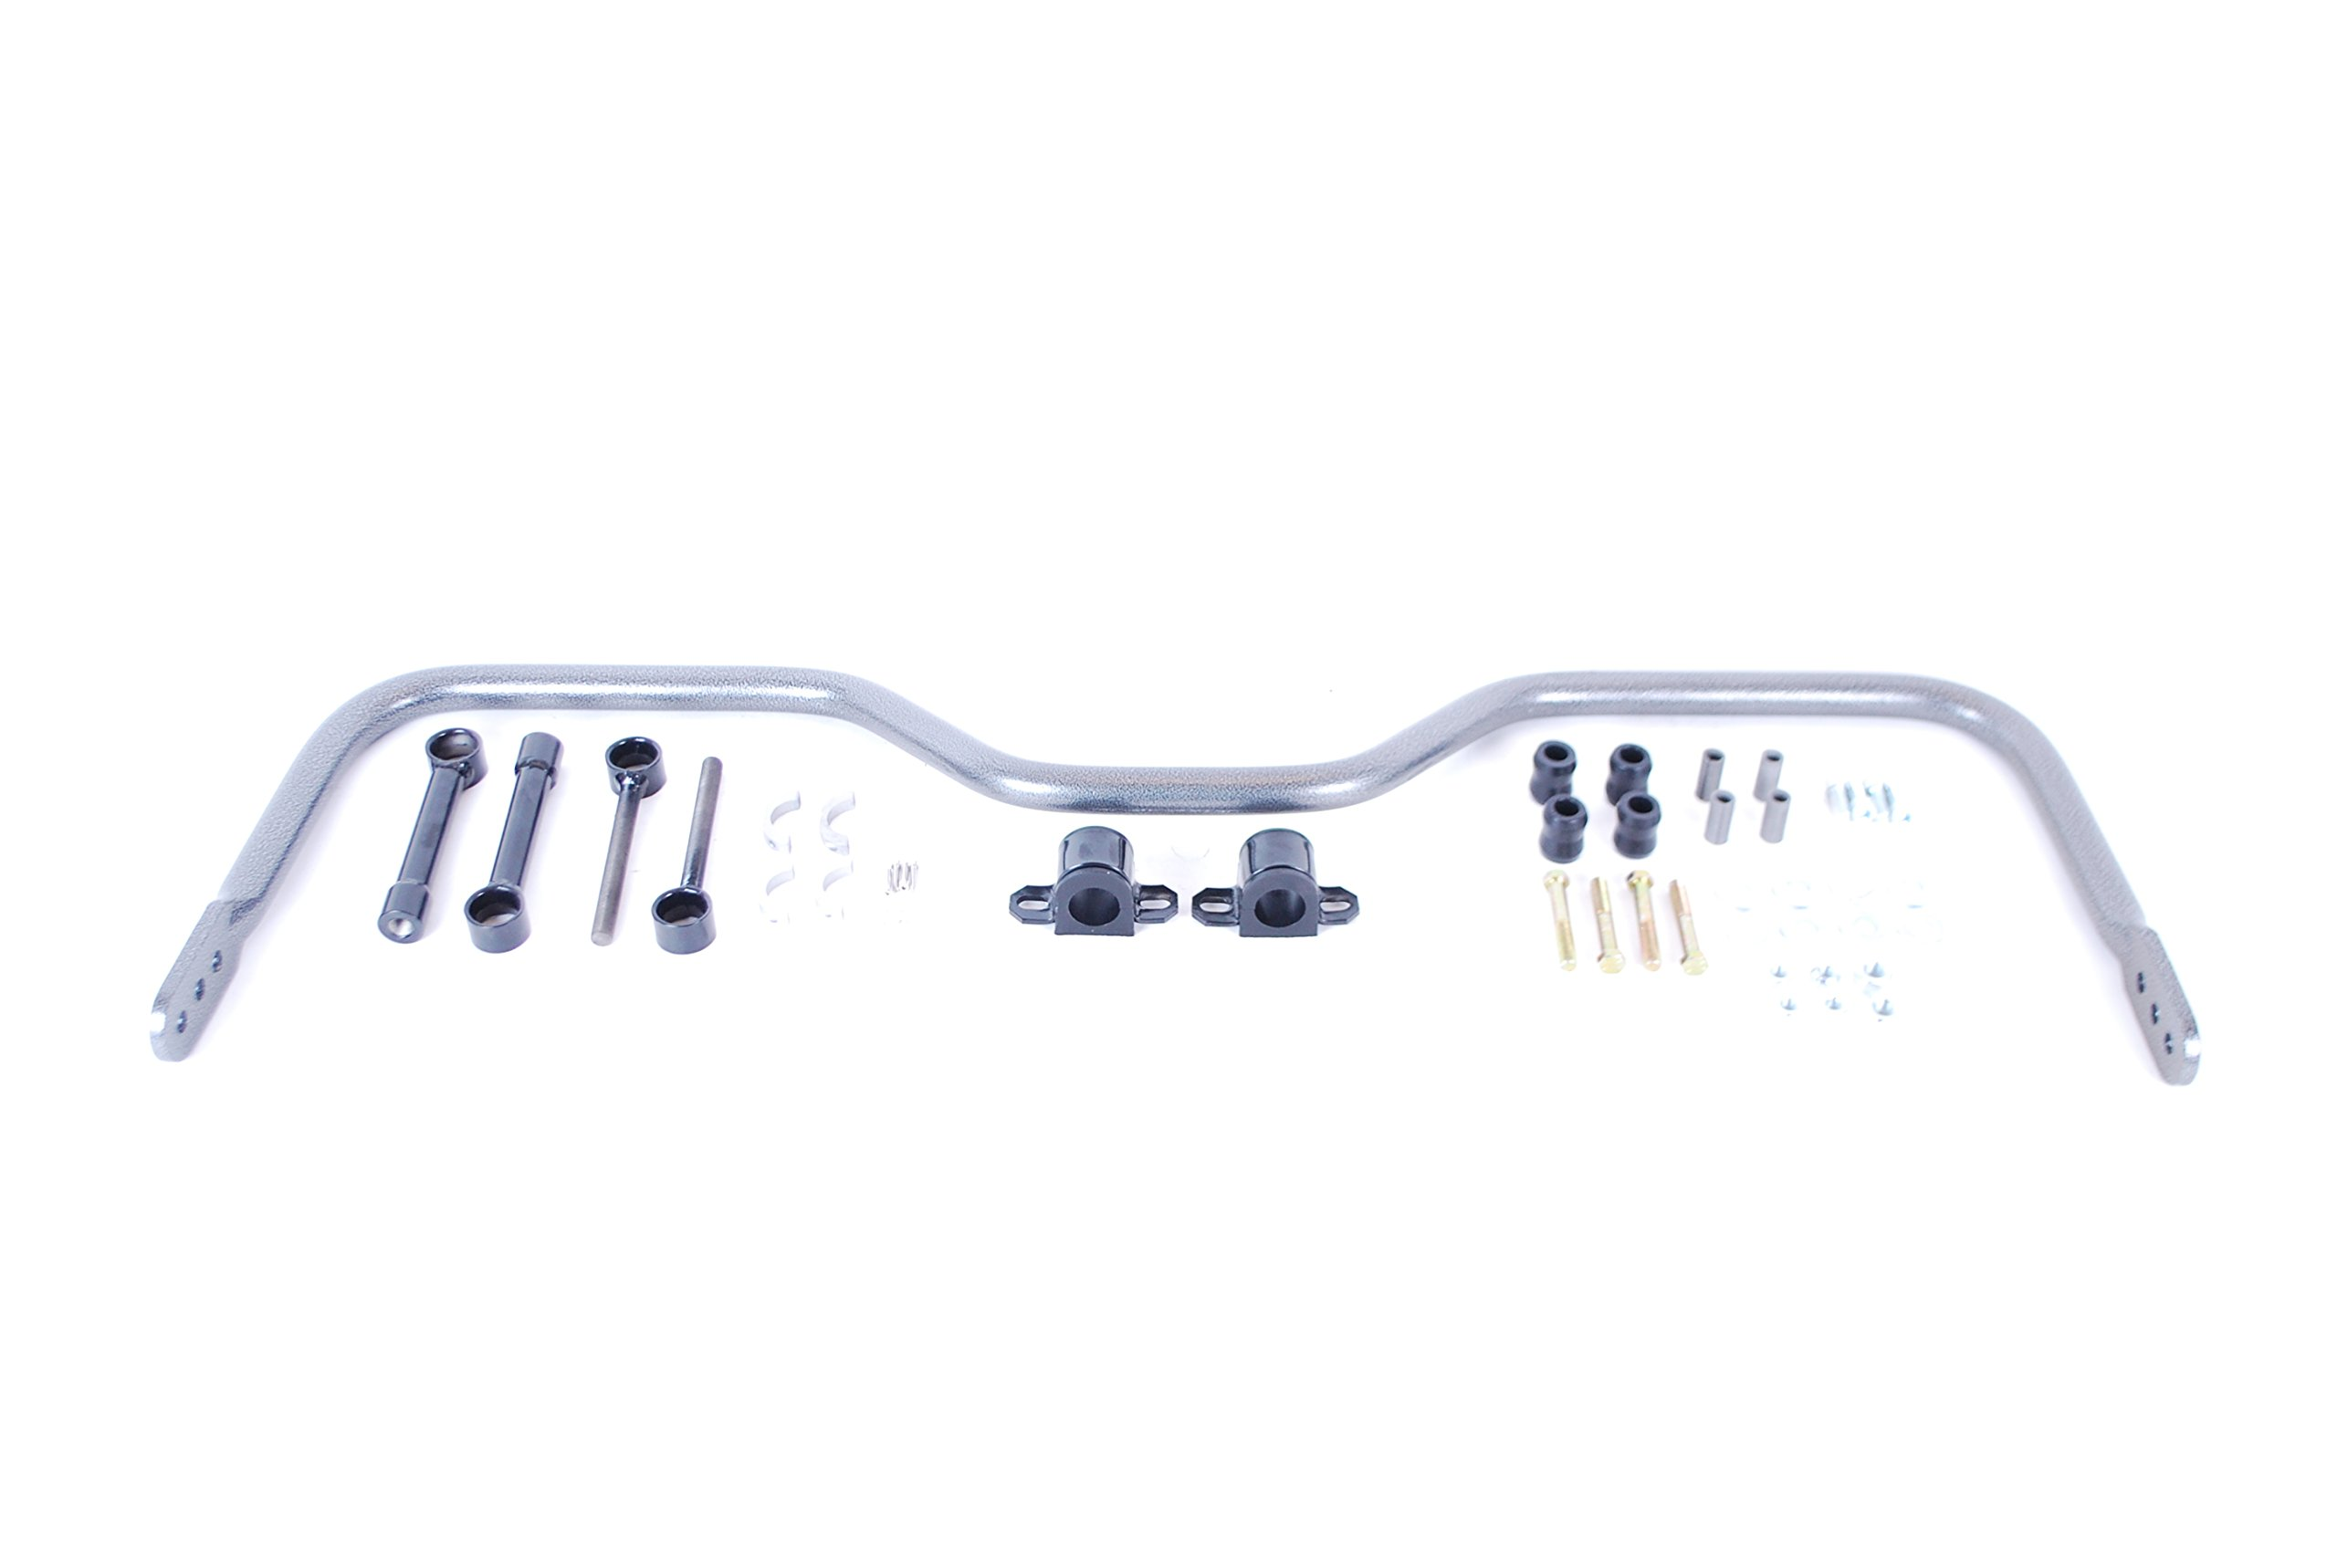 Hellwig 7306 1.25'' Diameter Adjustable Rear Sway Bar by Hellwig